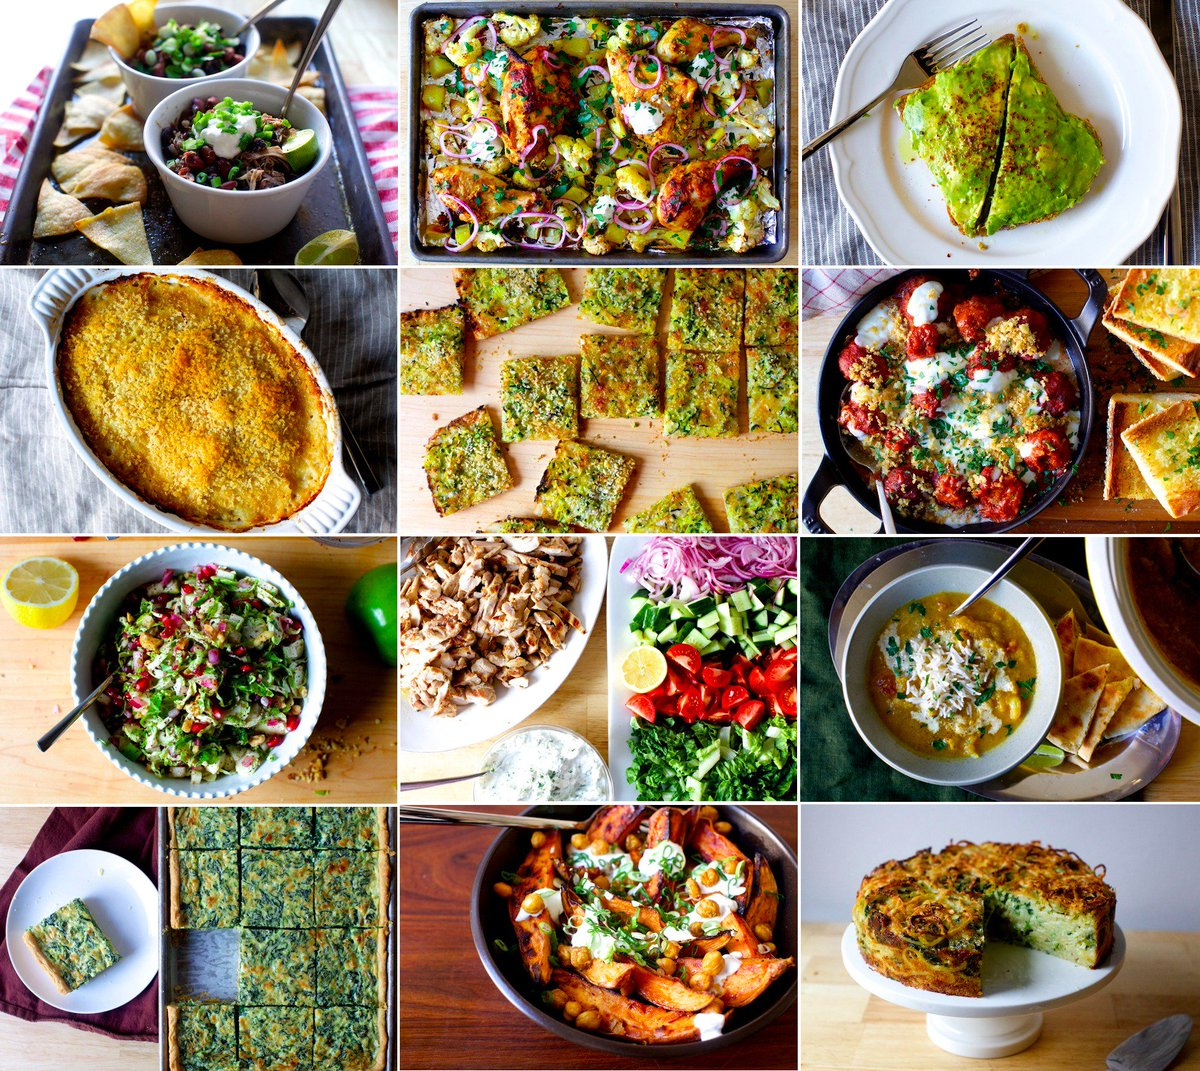 Smittenkitchen On Twitter The Best Of 2016 Savory Edition